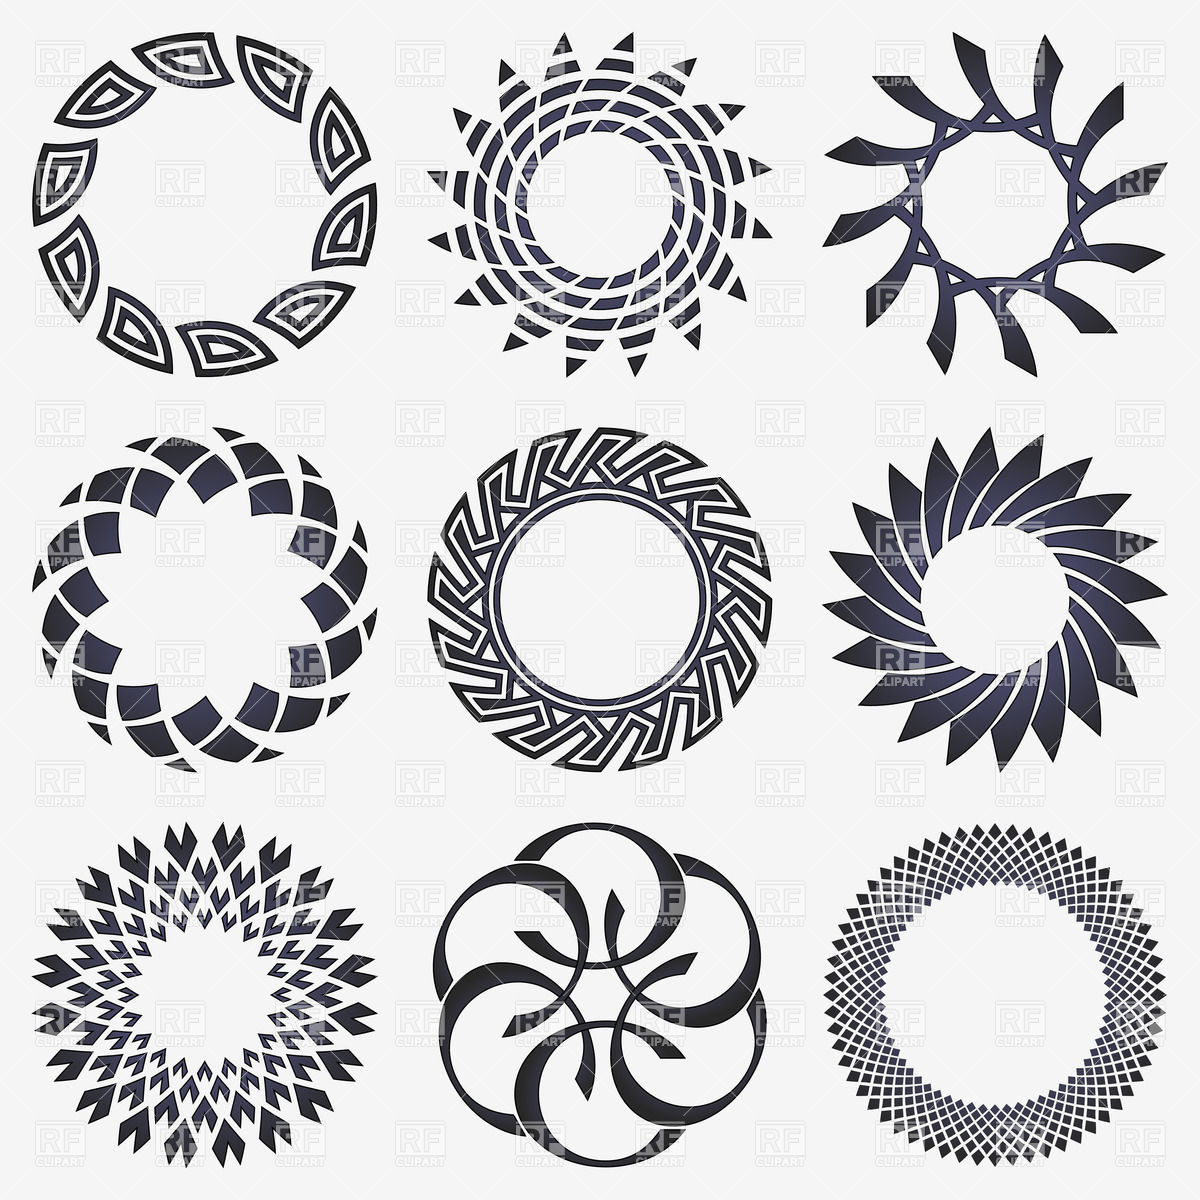 Round shape design clipart 7 » Clipart Station.